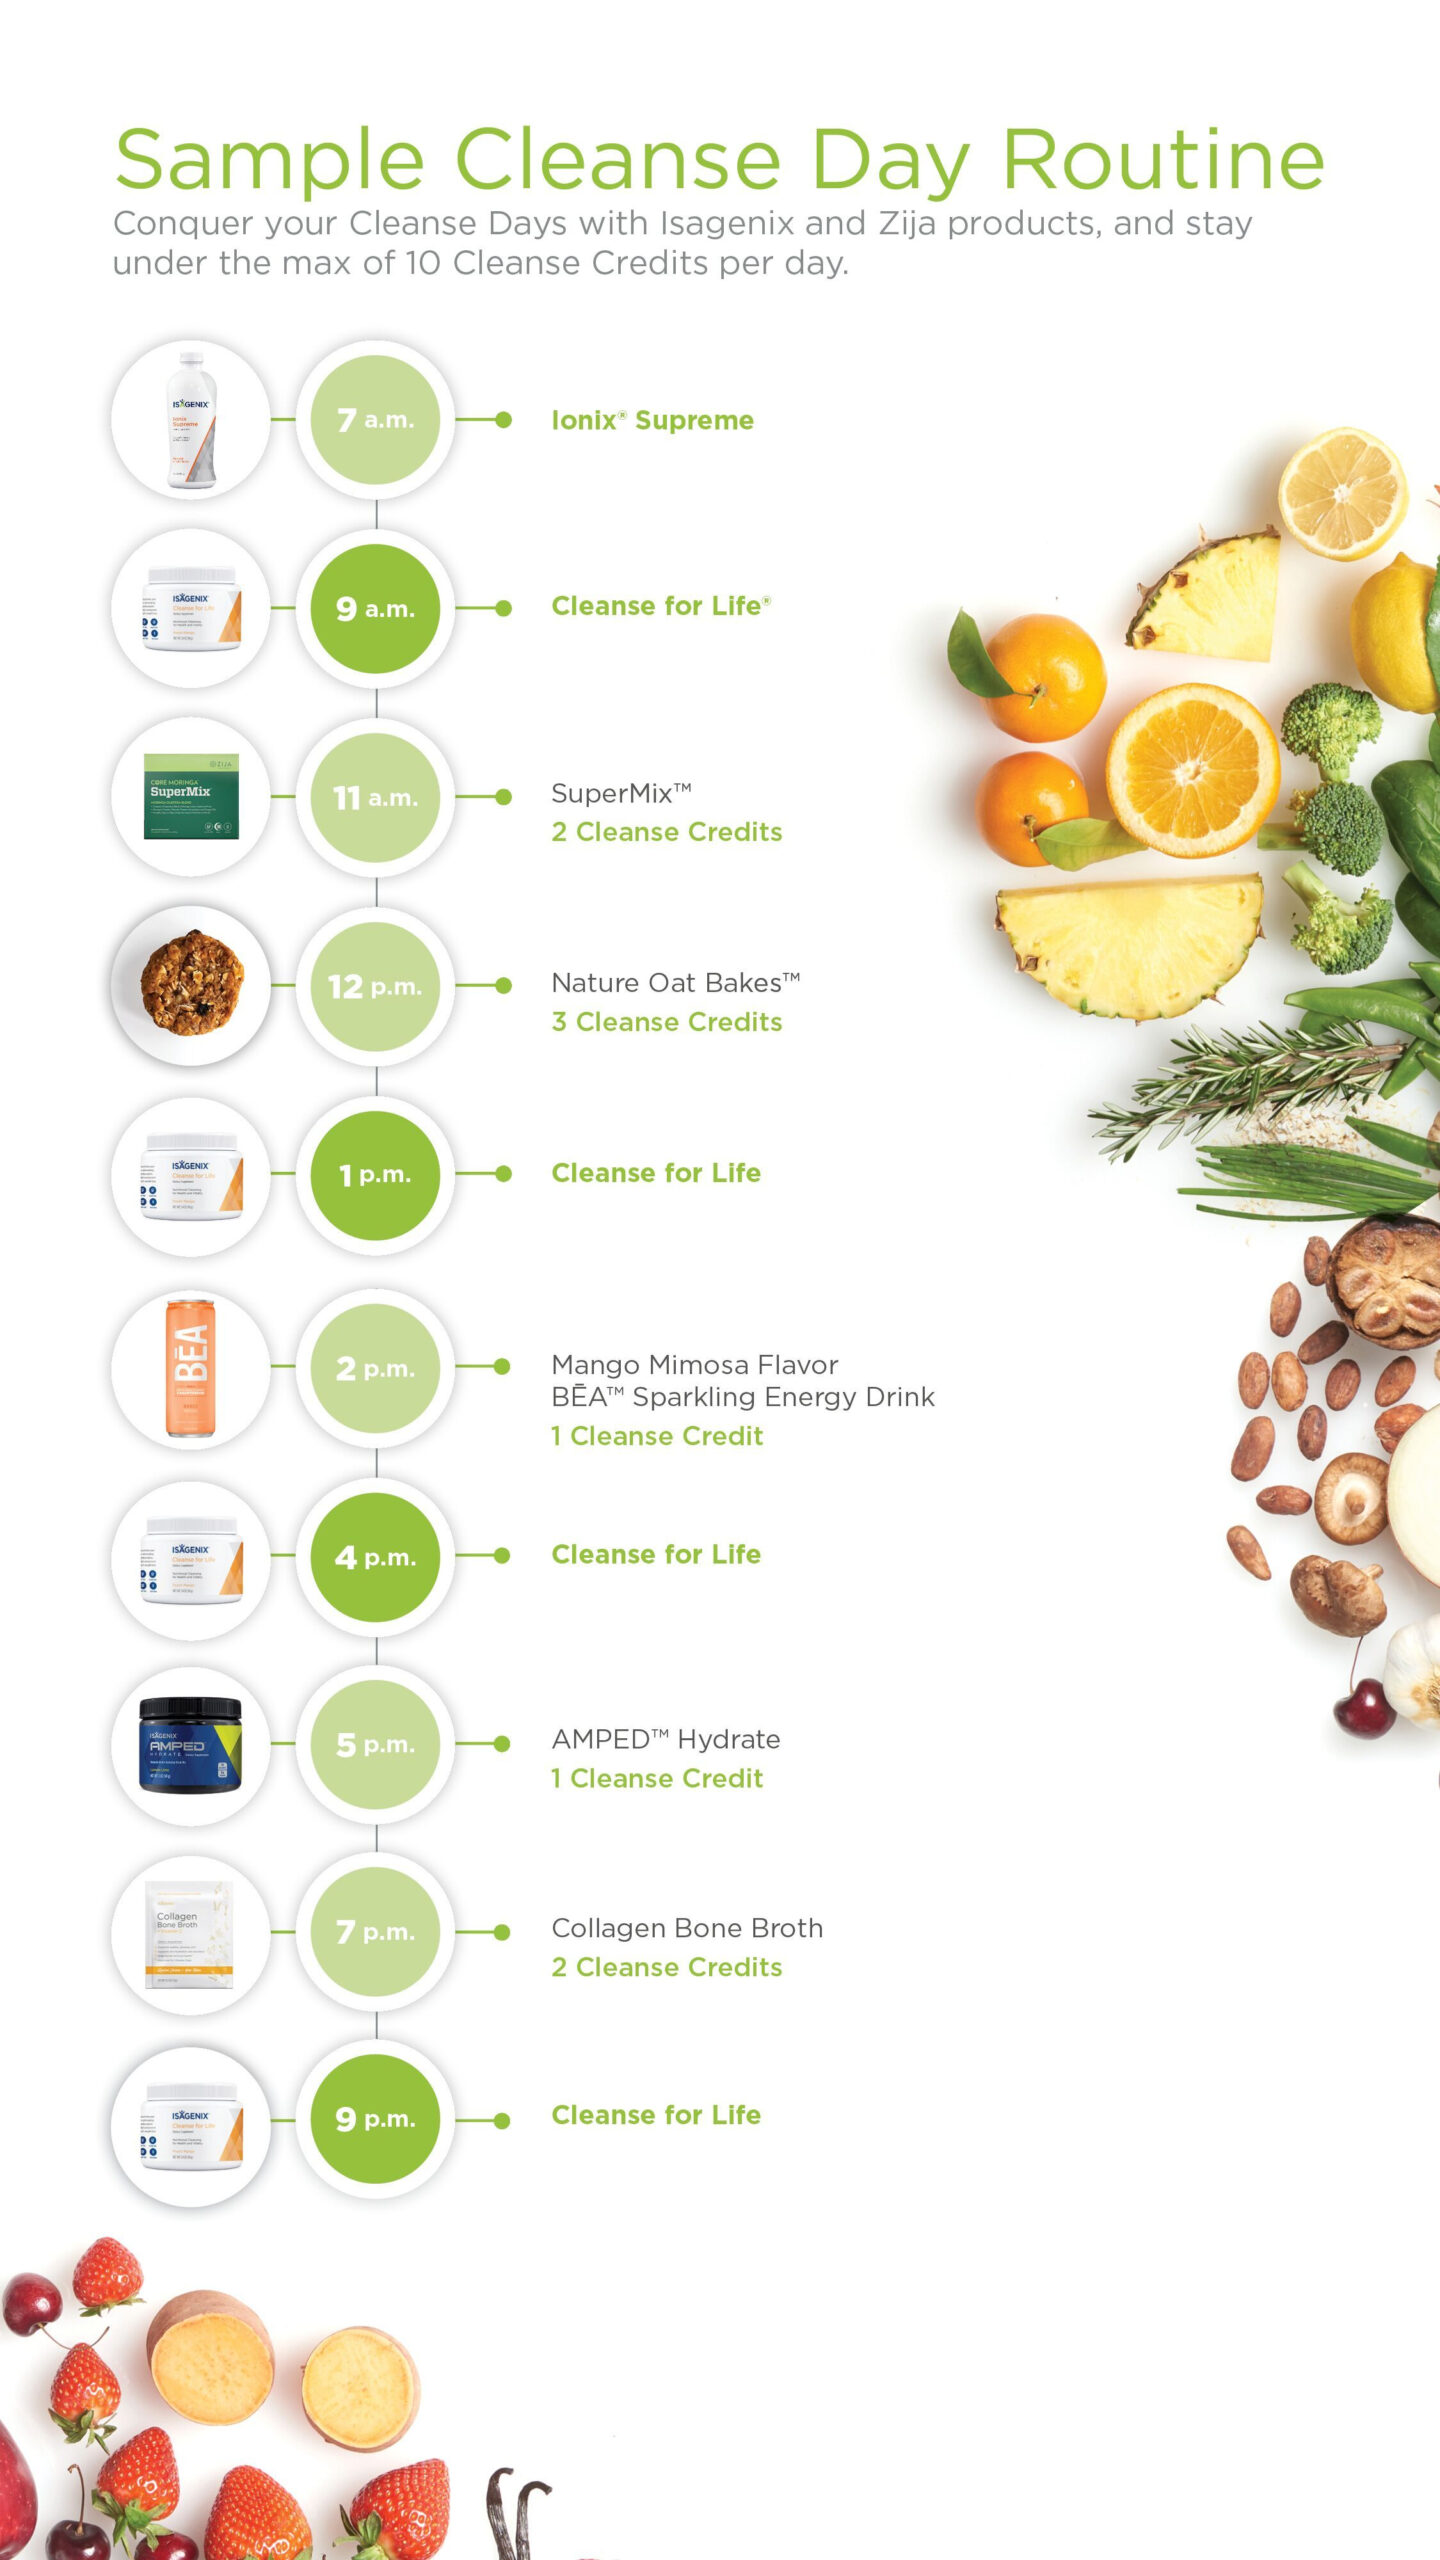 Pin On Isagenix Cleanse Day Schedule And Instructions intended for Isagenix Shake Day Schedule Pdf 2022